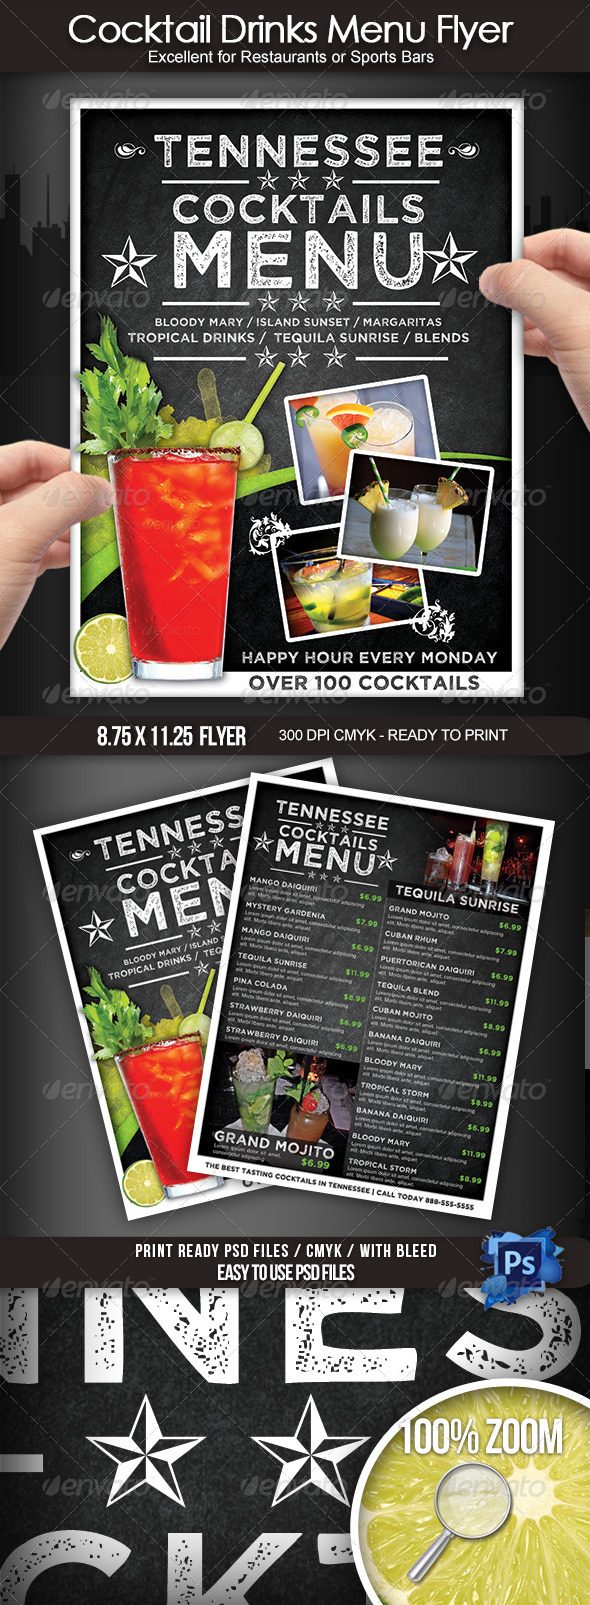 Cocktail Drinks Menu